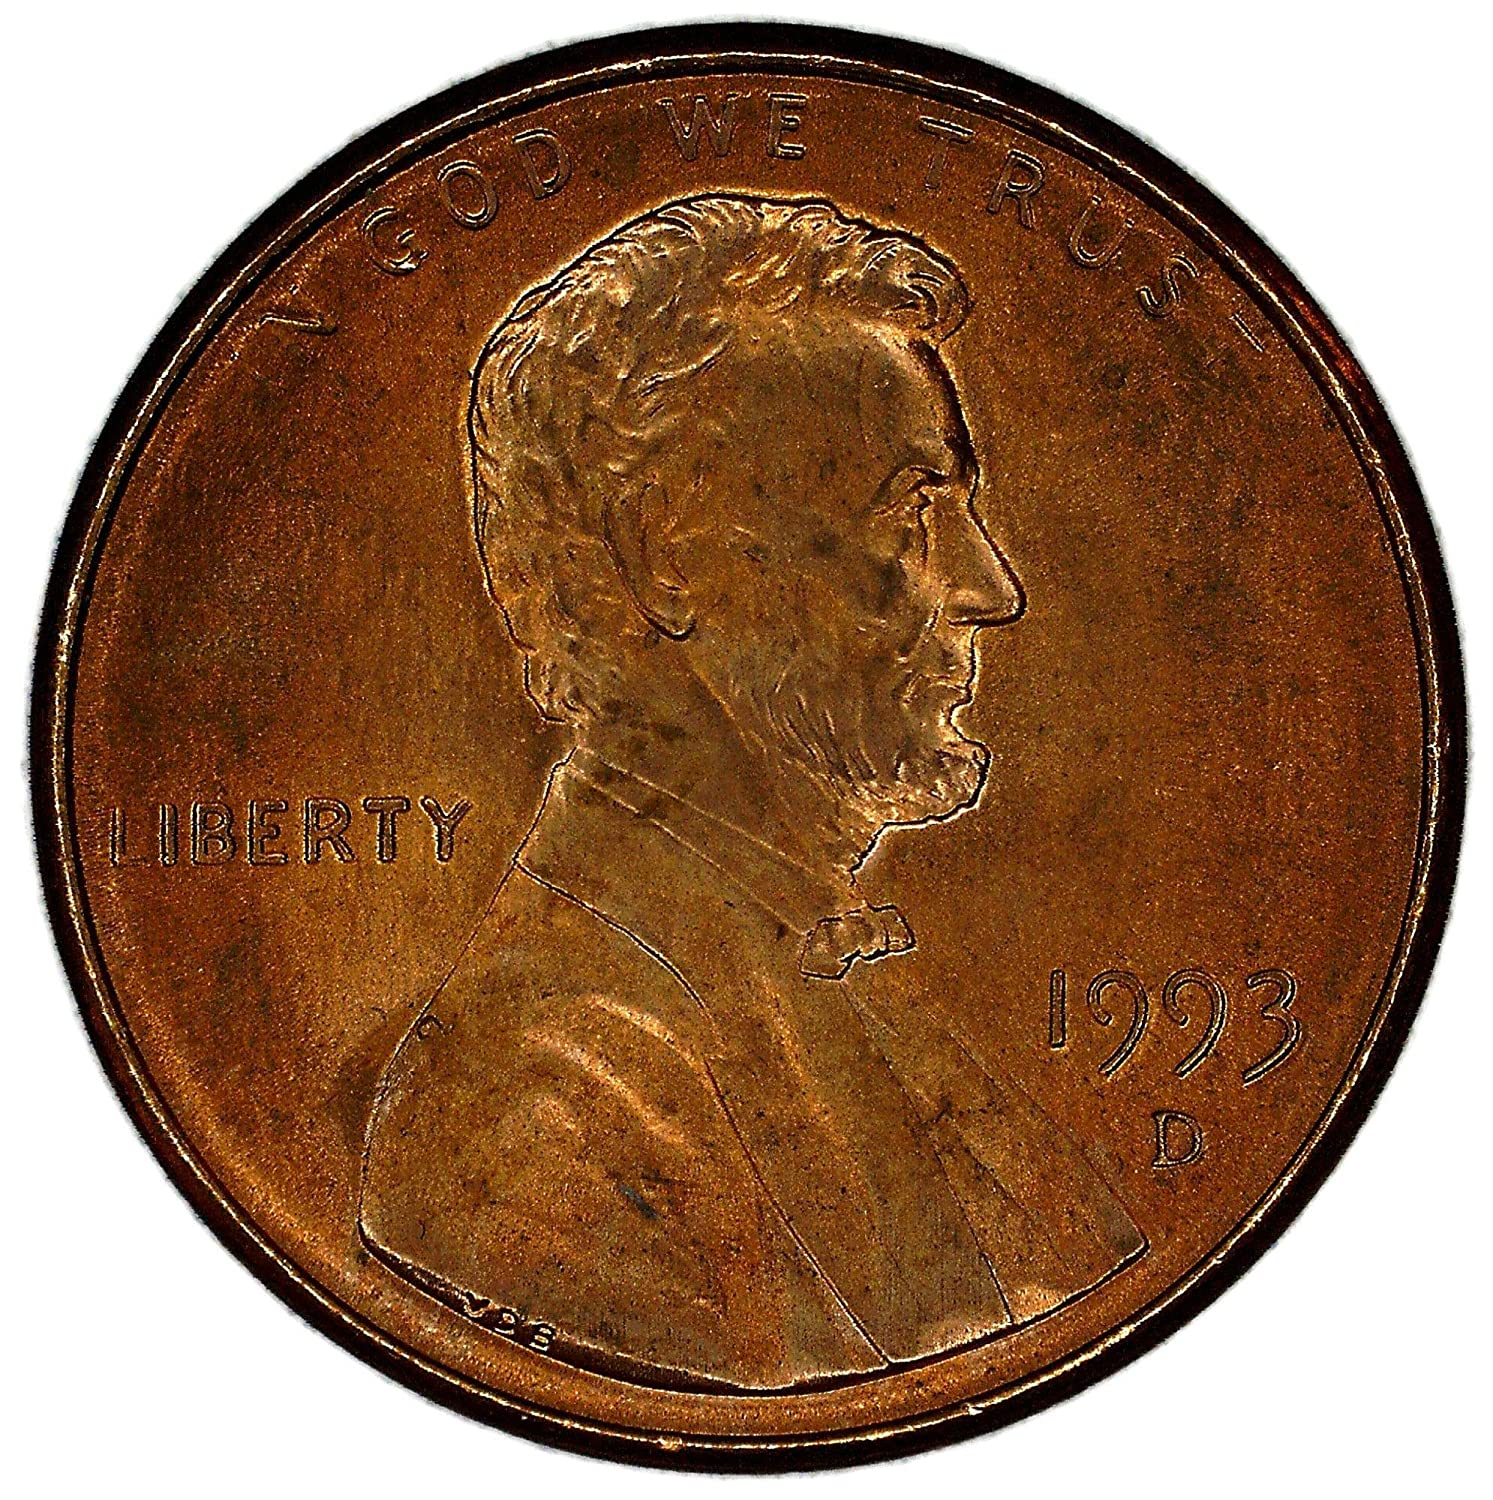 USA Small Cent 1993 D UNCIRCULATED